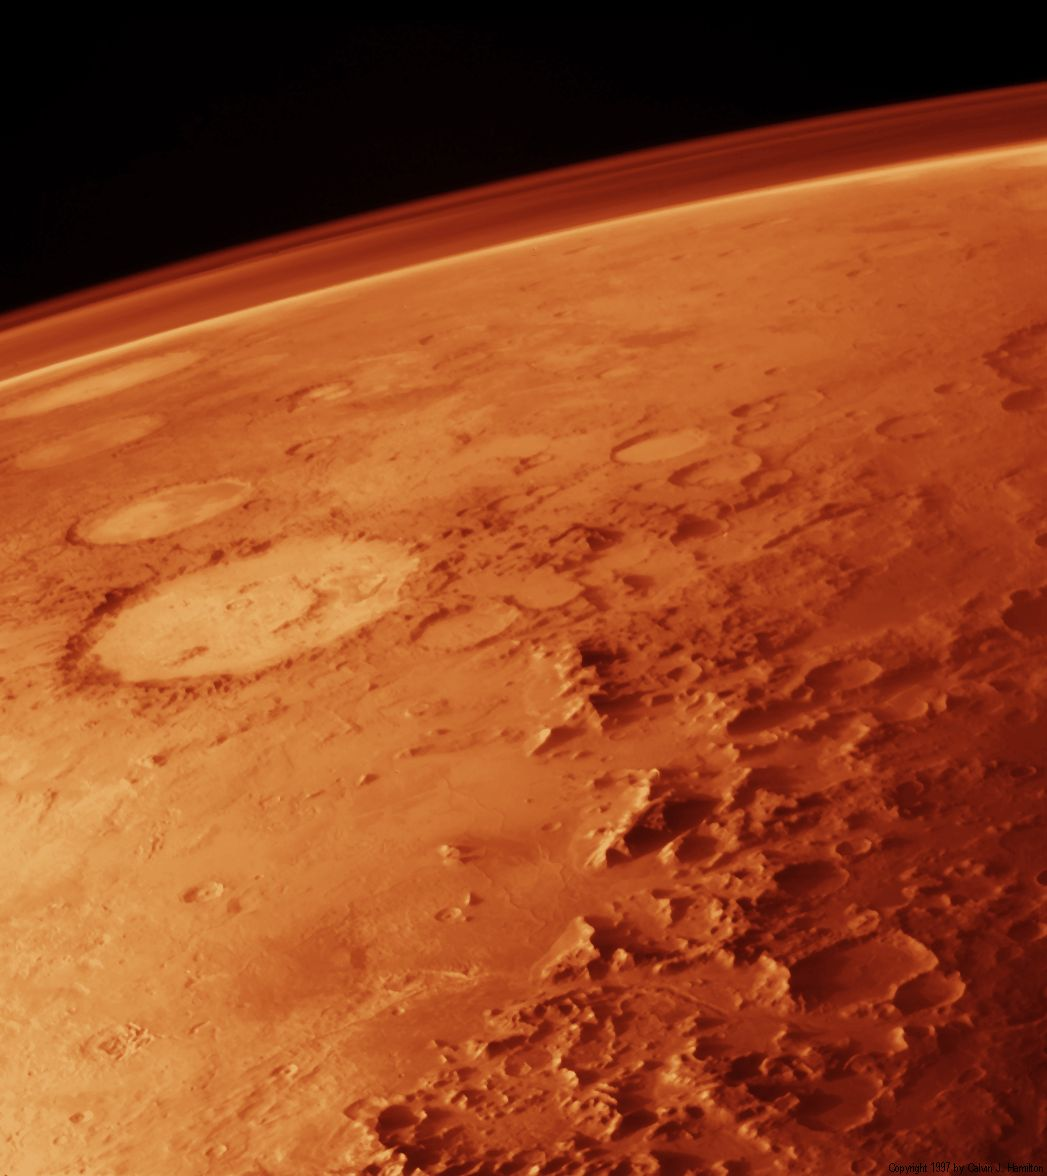 The Mars One Project: A One Way Ticket to Space